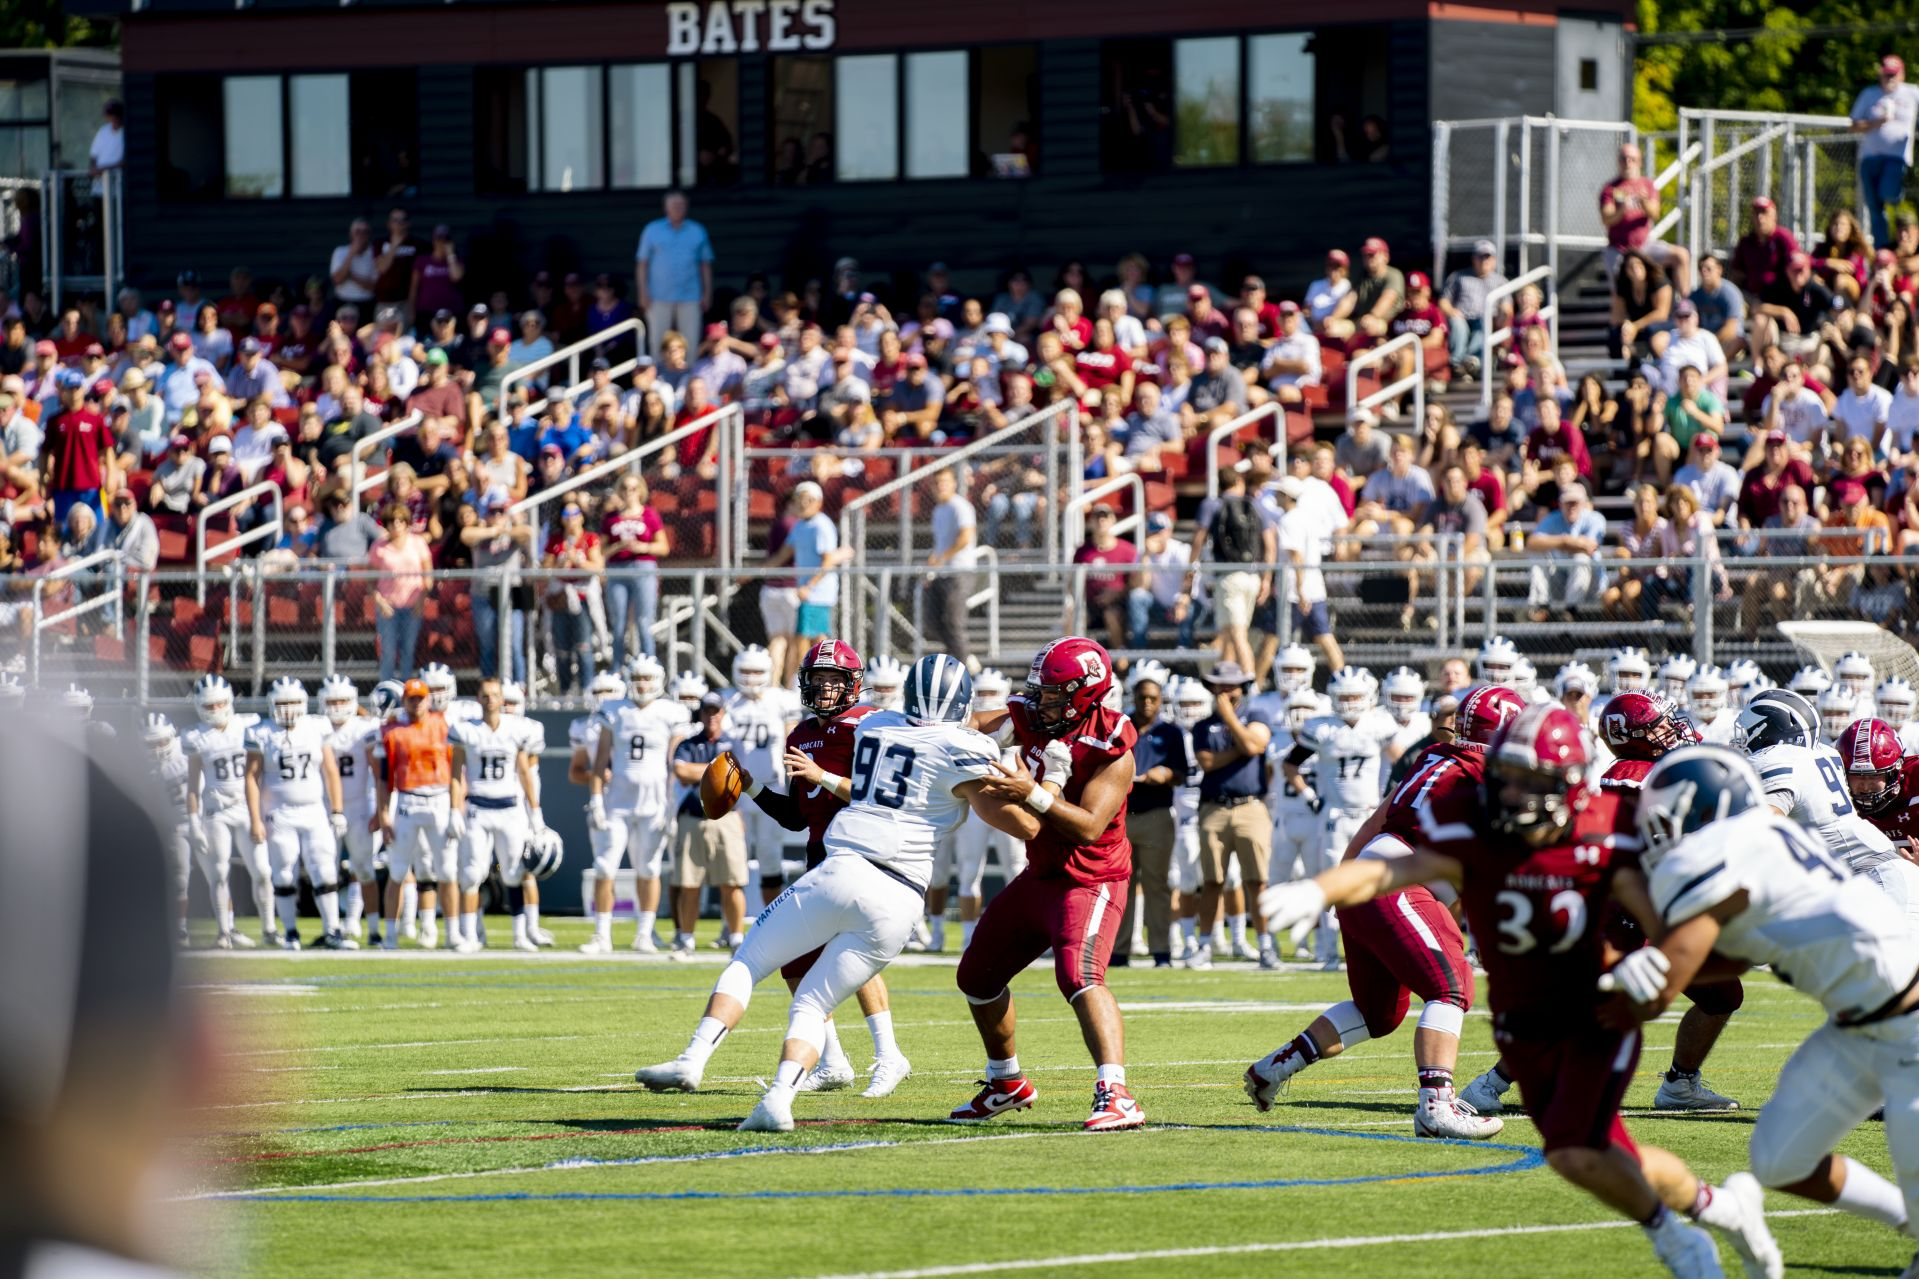 Quarterback Brendan Costa '21 of Westport, Mass., looks to pass during the Bobcats' home opener vs. Middlebury at Garcelon Field. (Theophil Syslo/Bates College)